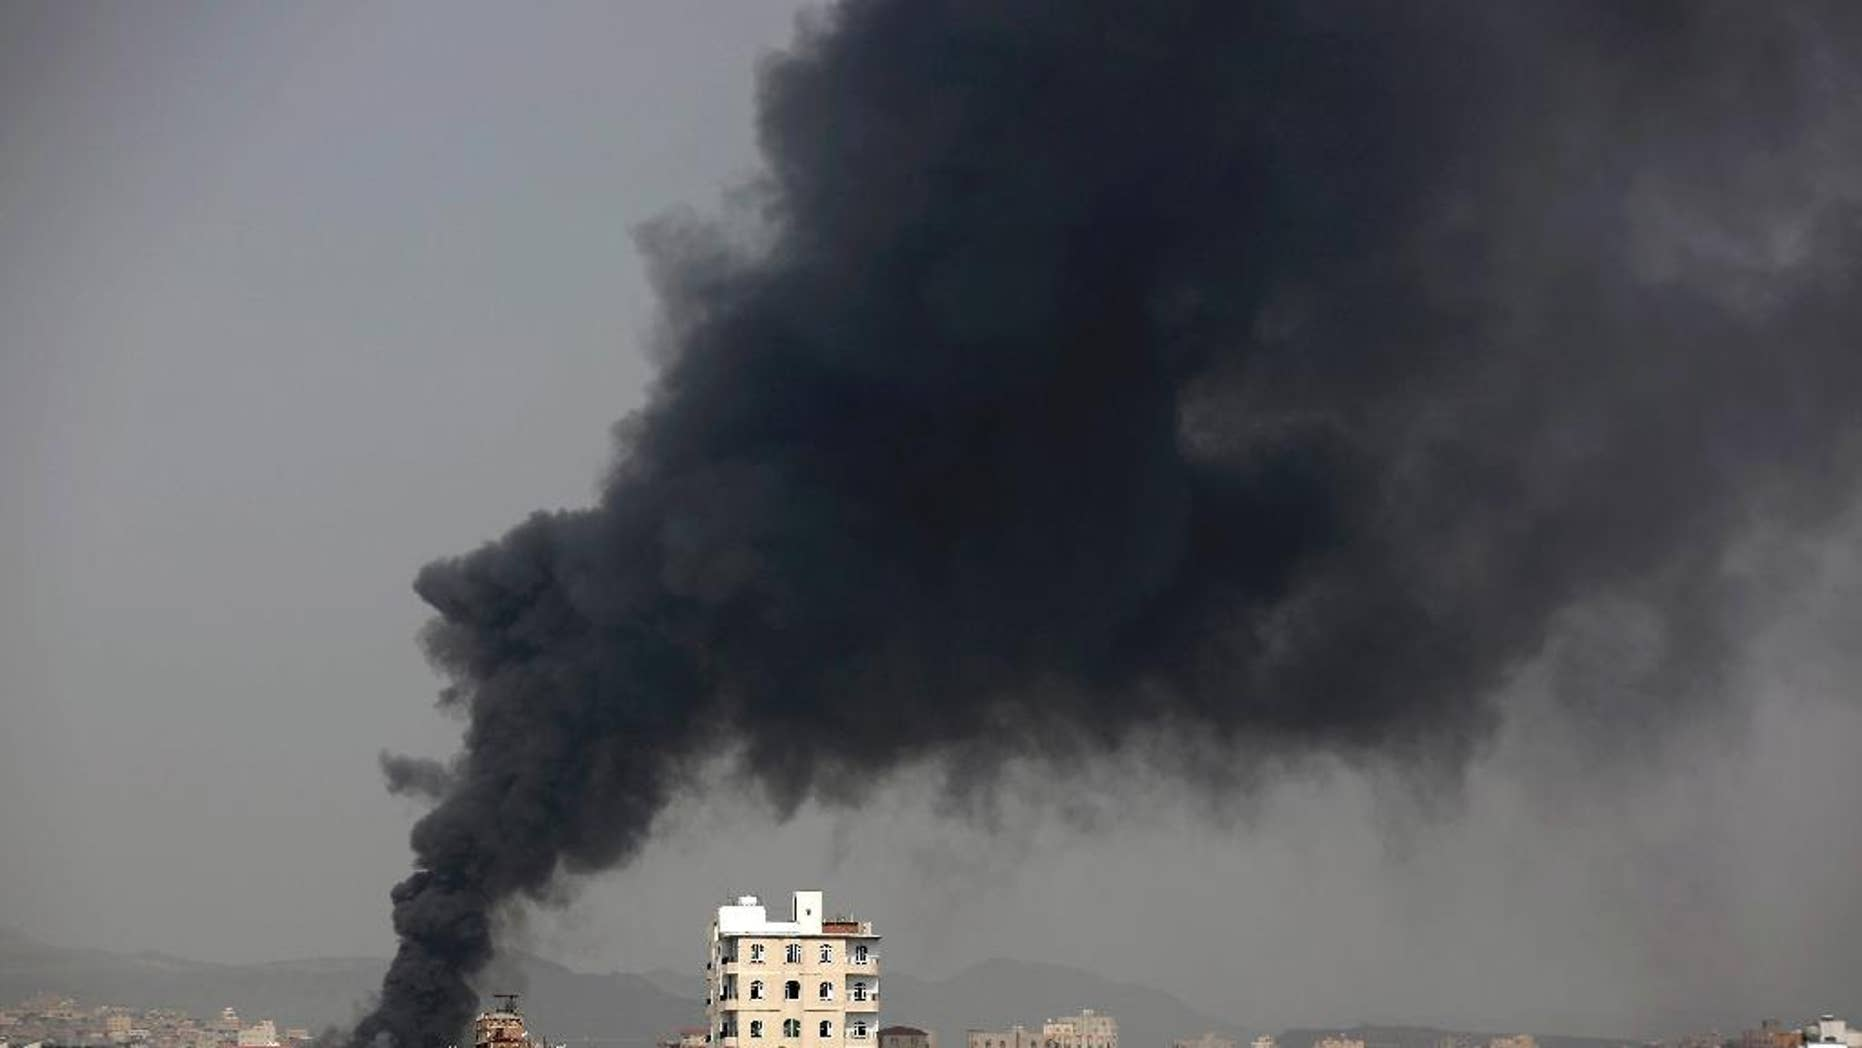 In this Aug. 9, 2016 photo, smoke rises after Saudi-led airstrikes hit a food factory in Sanaa, Yemen. In the air campaign by Saudi Arabia and its allies against Yemen's Shiite rebels, rights experts say there has been a pattern by the Saudi-led coalition in depending on faulty intelligence, failing to distinguish between civilian and military targets and disregarding the likelihood of civilian casualties. Experts say some of the strikes likely amount to war crimes. (AP Photo/Hani Mohammed)